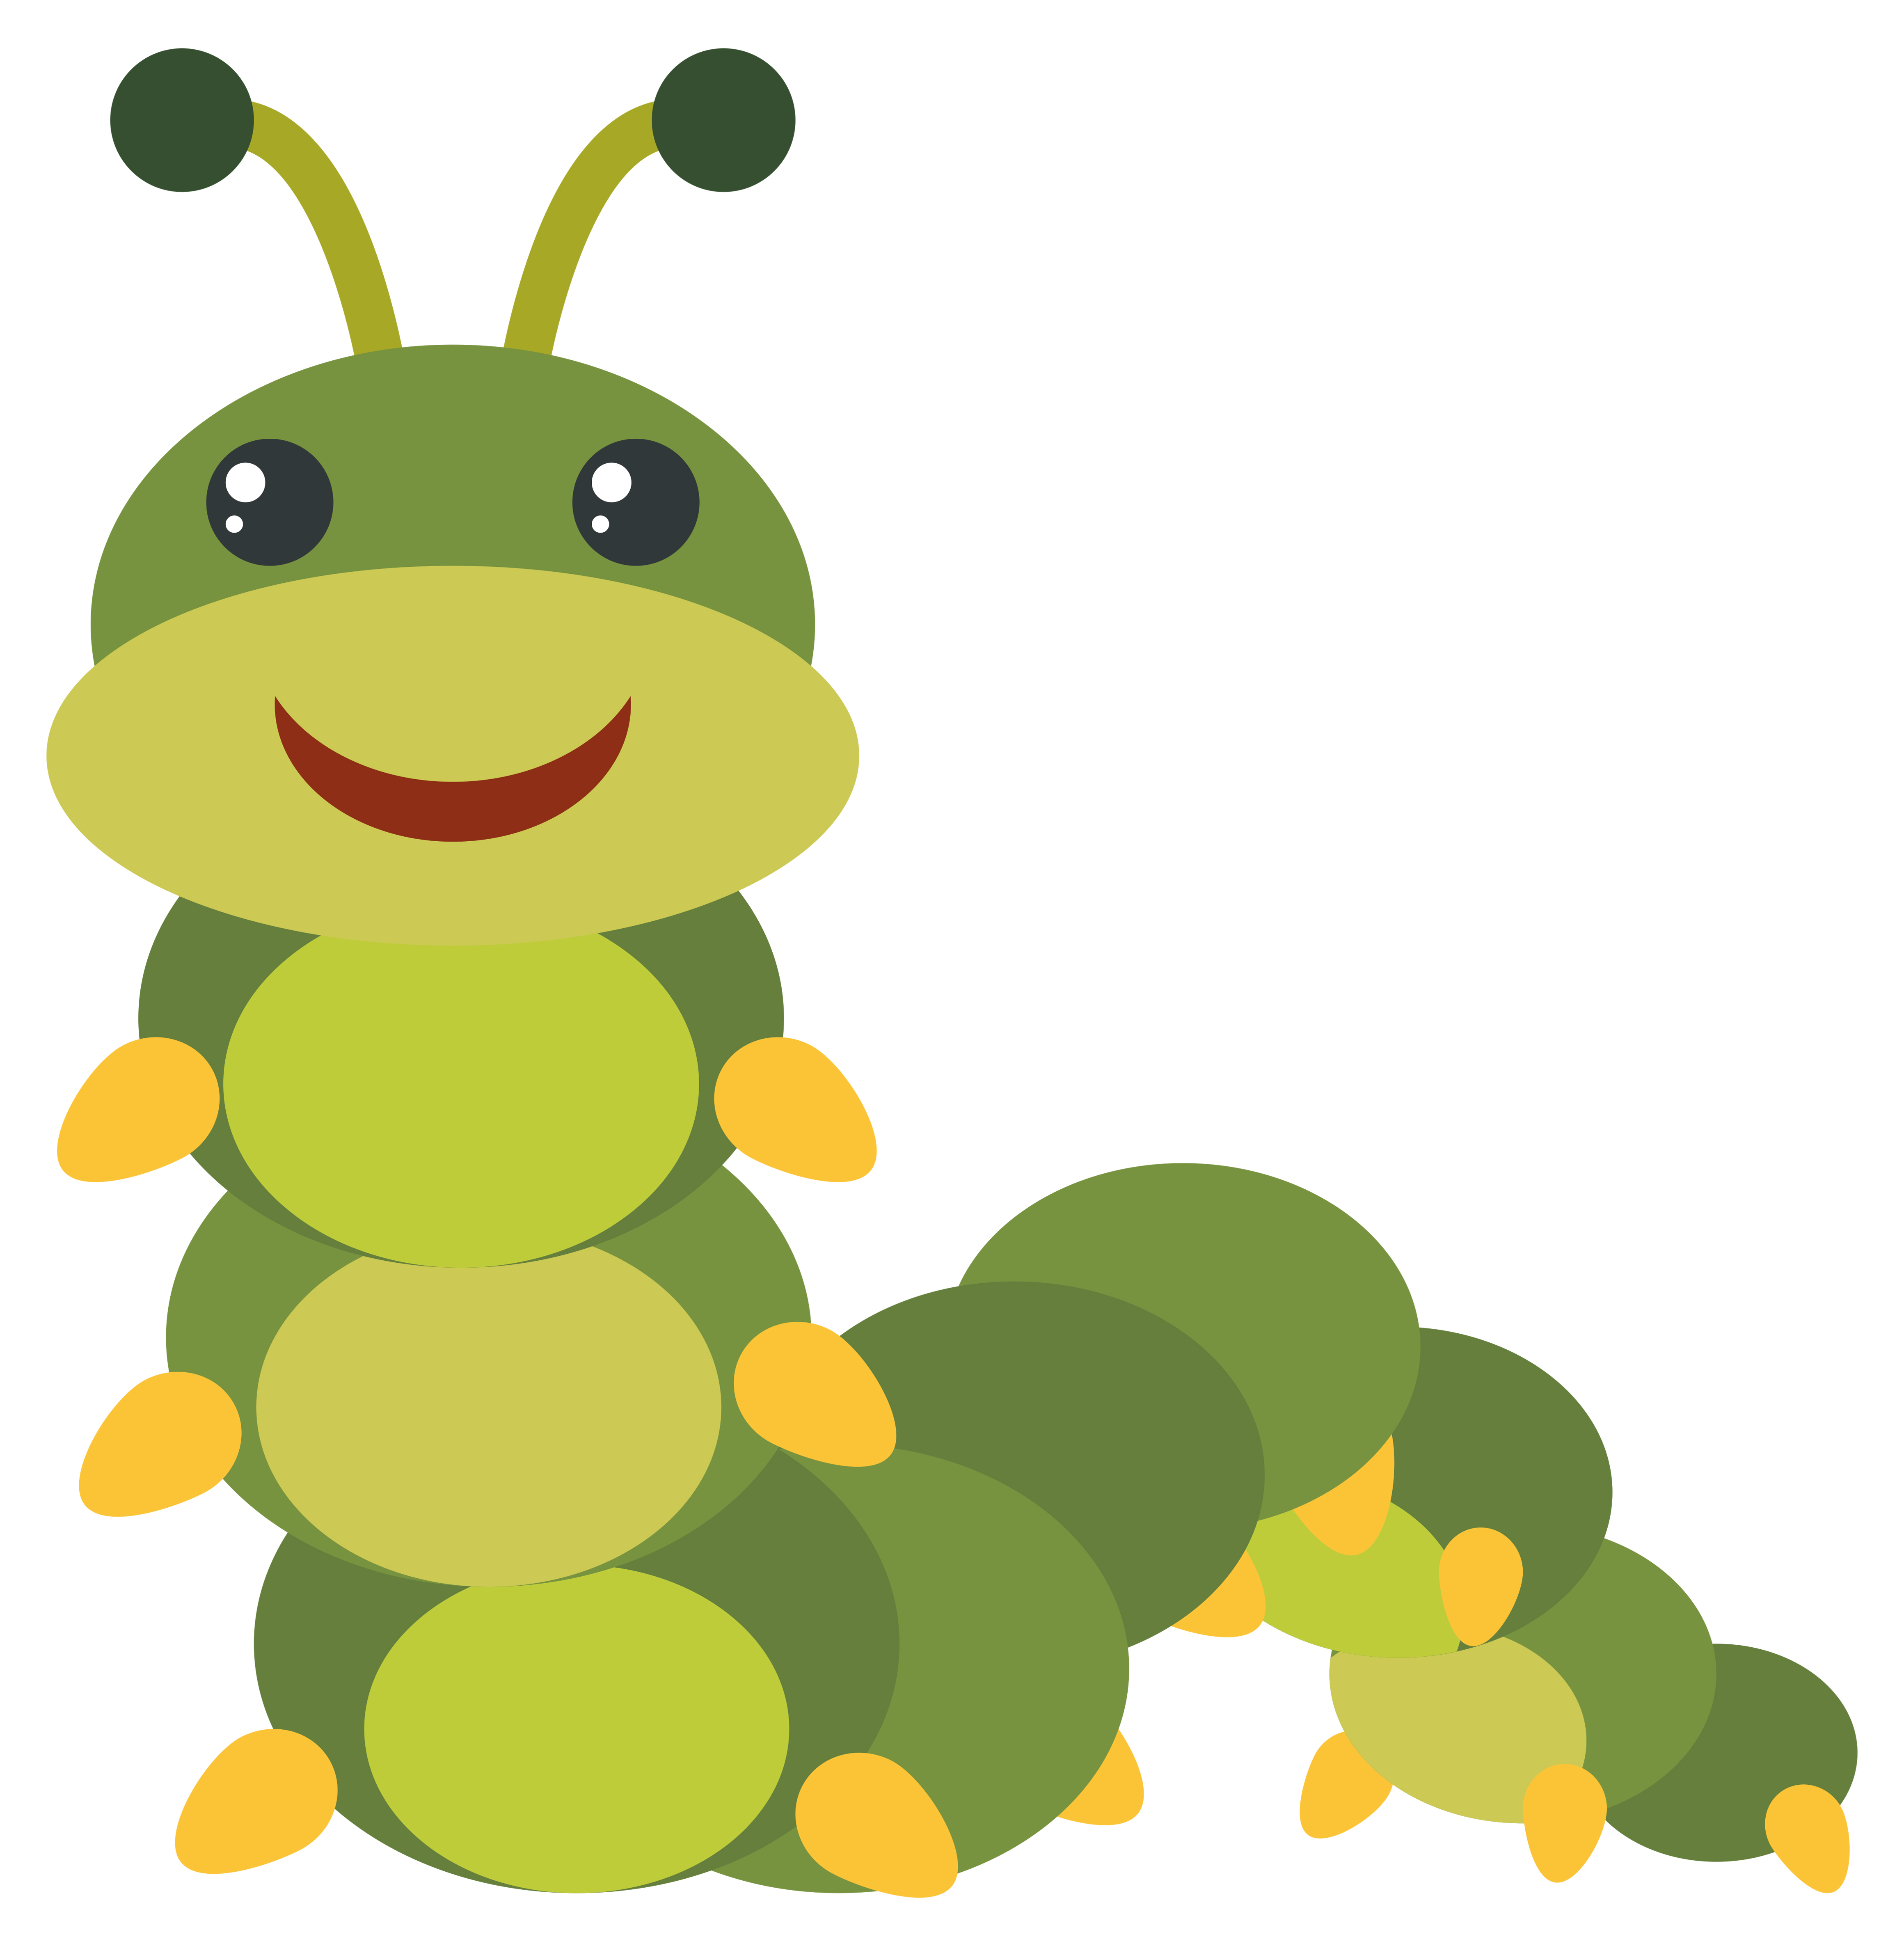 Green Caterpillar With Happy Face Download Free Vectors Clipart